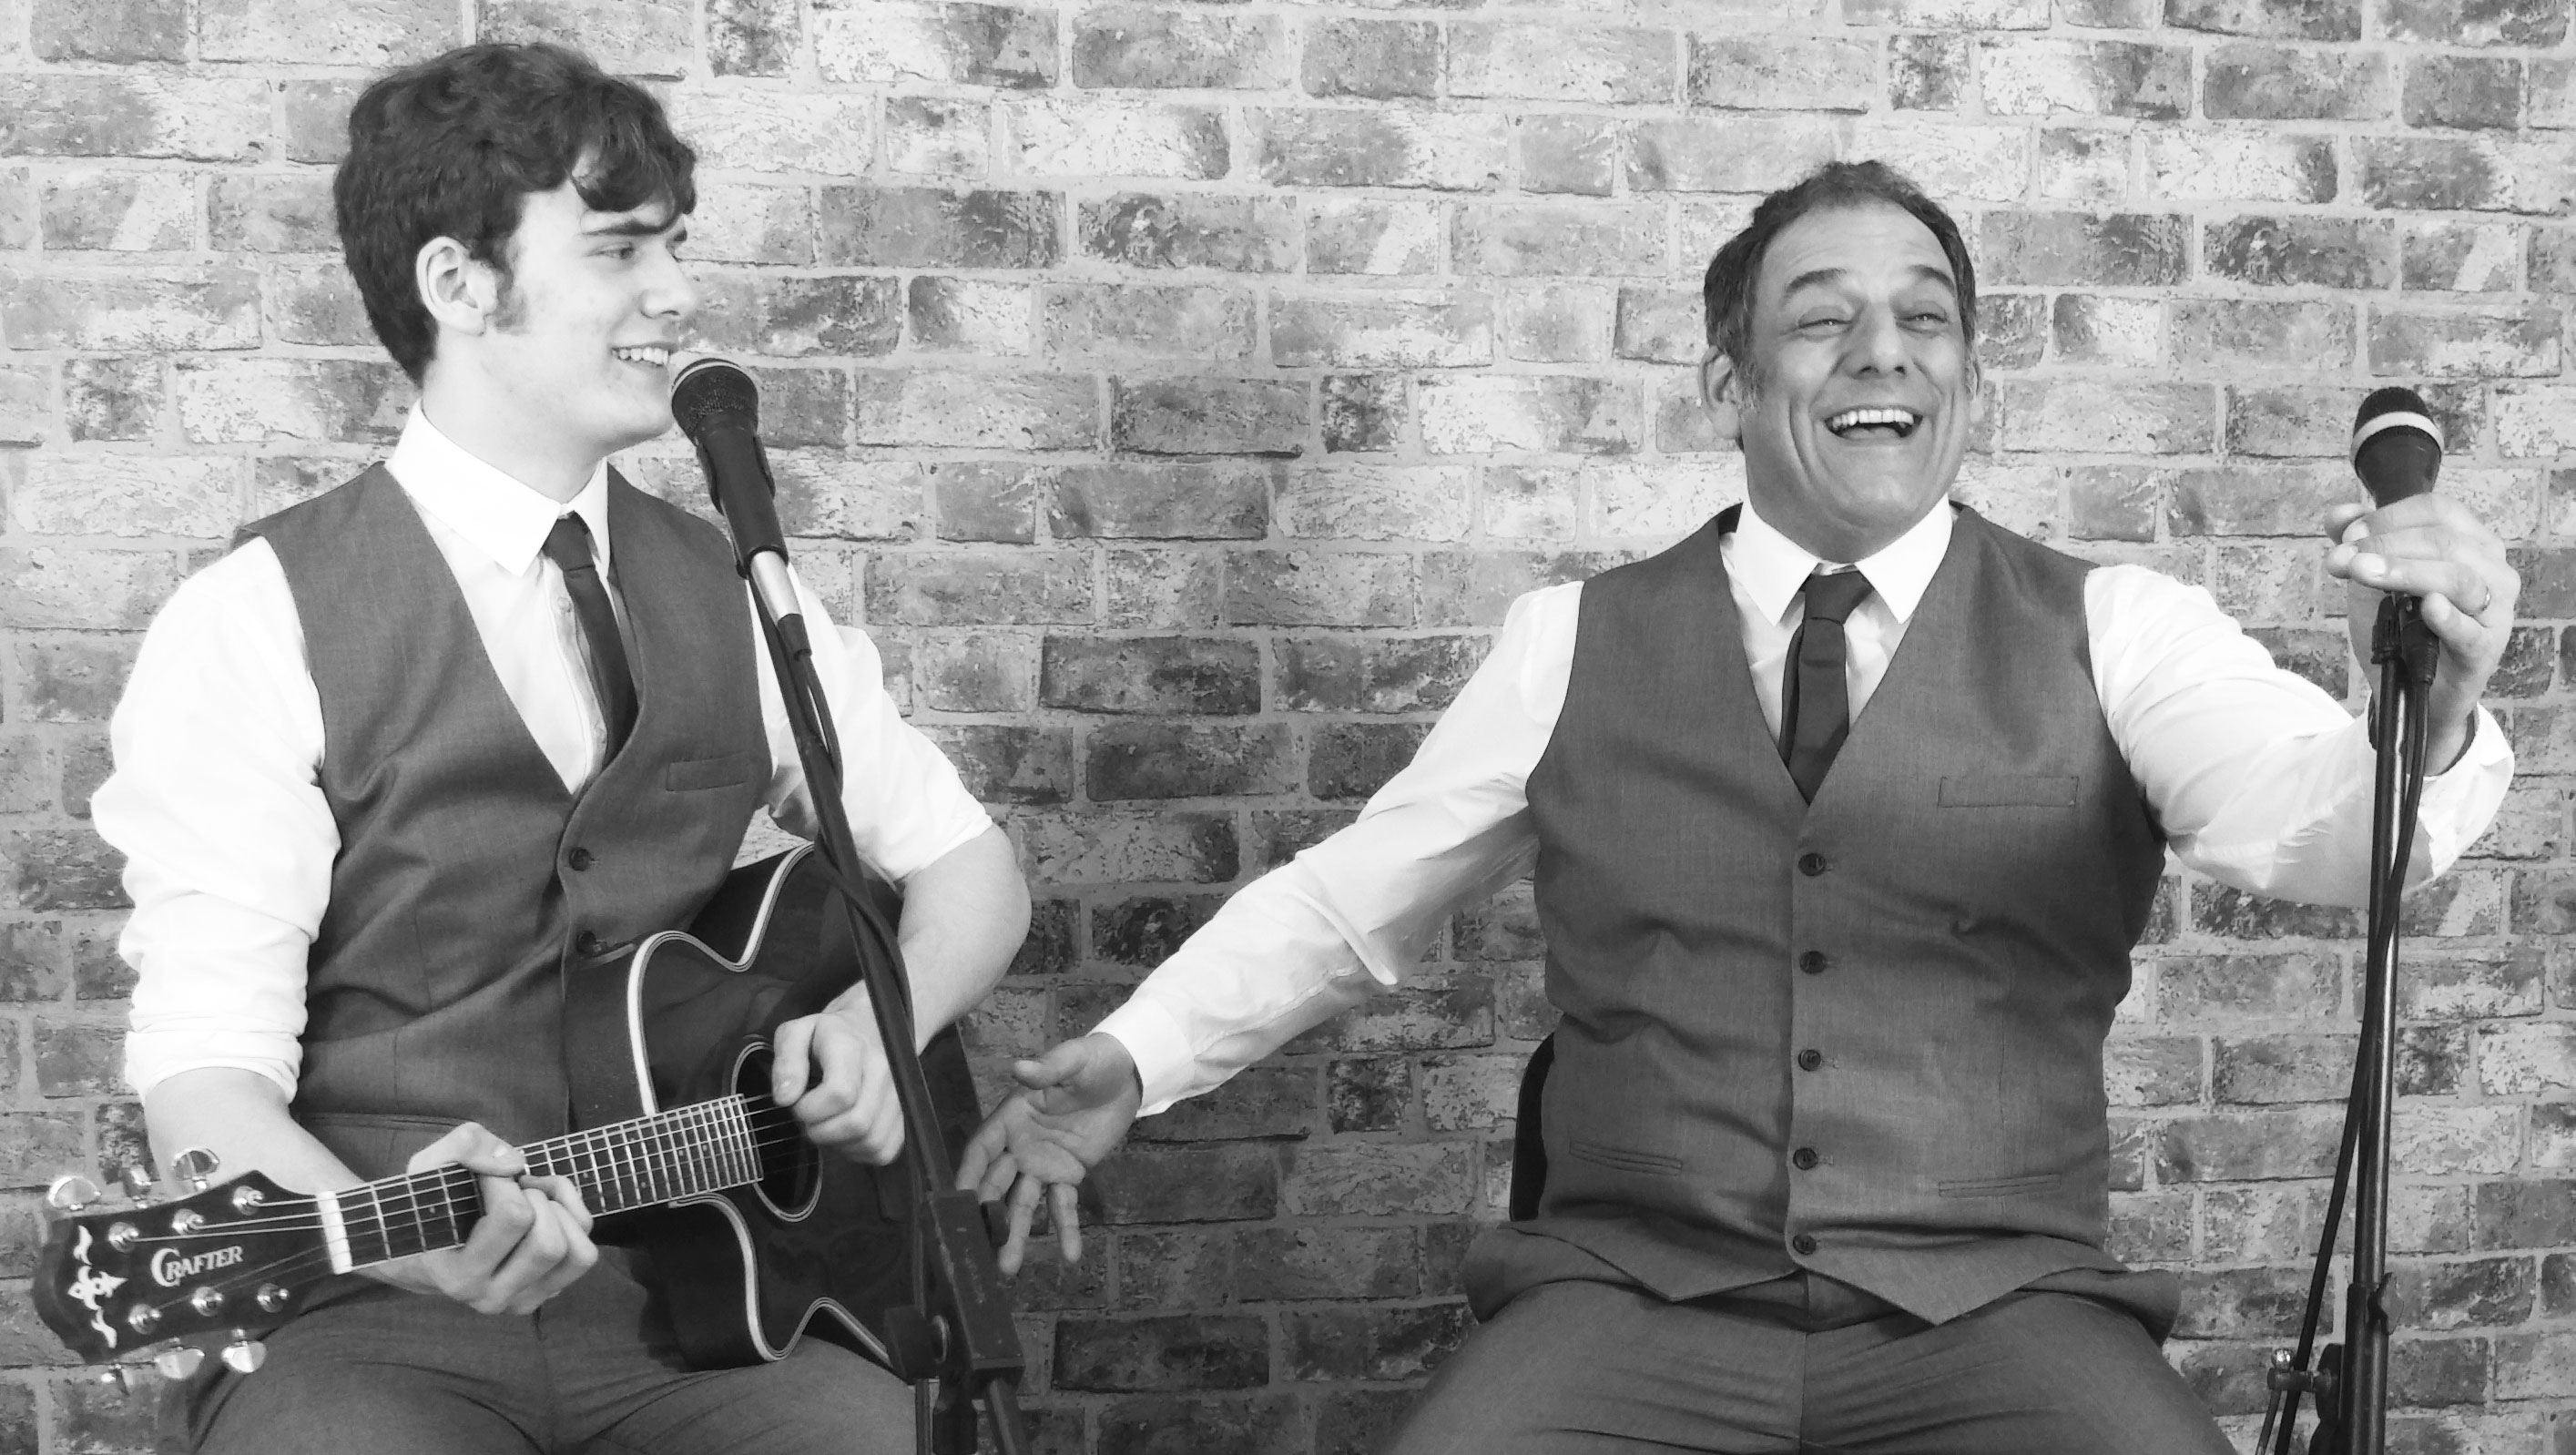 Nottingham acoustic duo Eastbound and Down sat on chairs wearing white shirt, dark tie and grey waistcoat. Guitar held by Jack